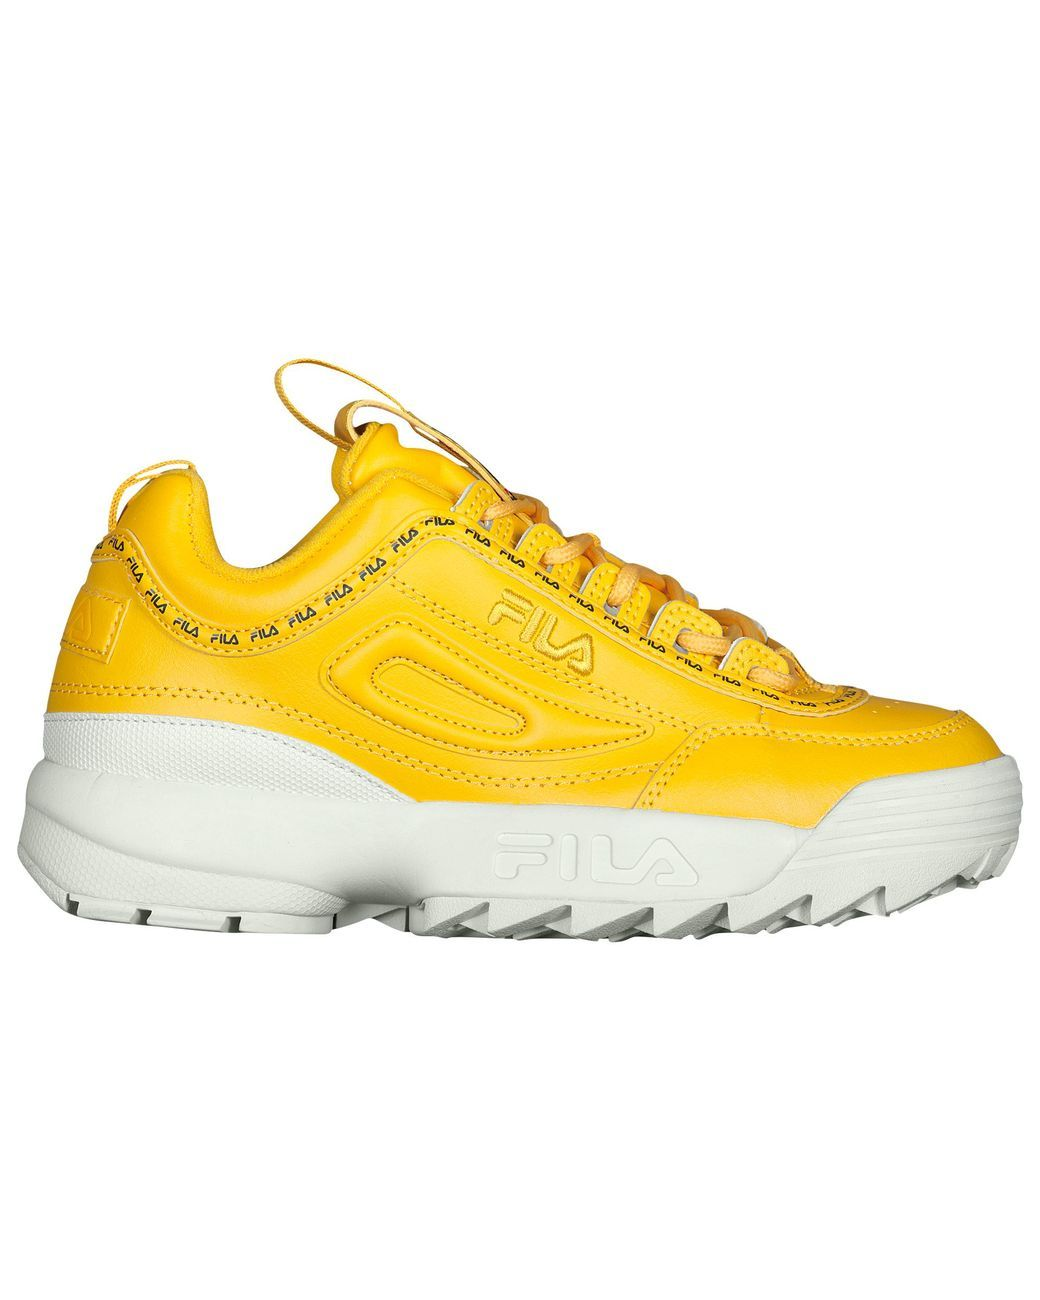 9f66c19c89 Women's Yellow Taped Logo Disruptor 2 Premium Sneakers in 2019 | I ...